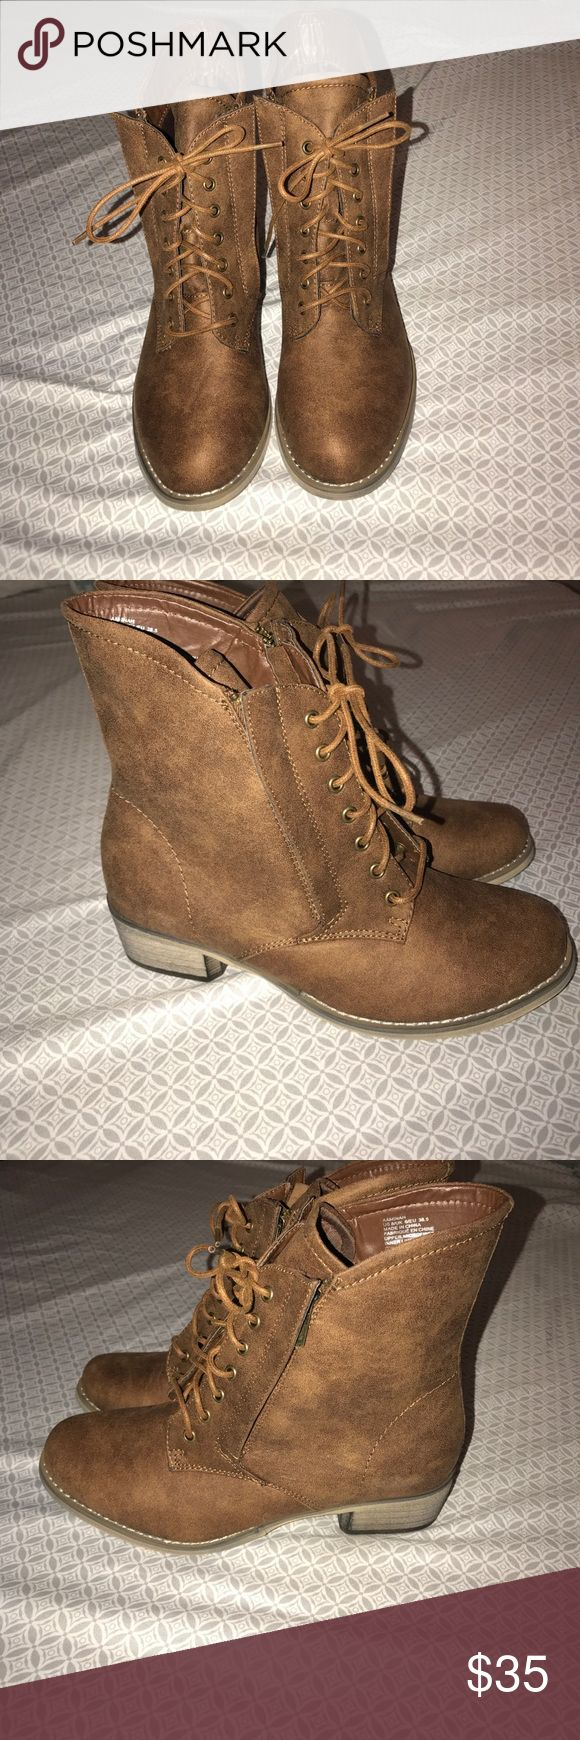 Super cute lace/zippered combat boots Super cute combat boots, laces up & has zippers on sides, perfect for this fall. These were just to big on me so they have never been worn! Brand new with box!! JustFab Shoes Combat & Moto Boots